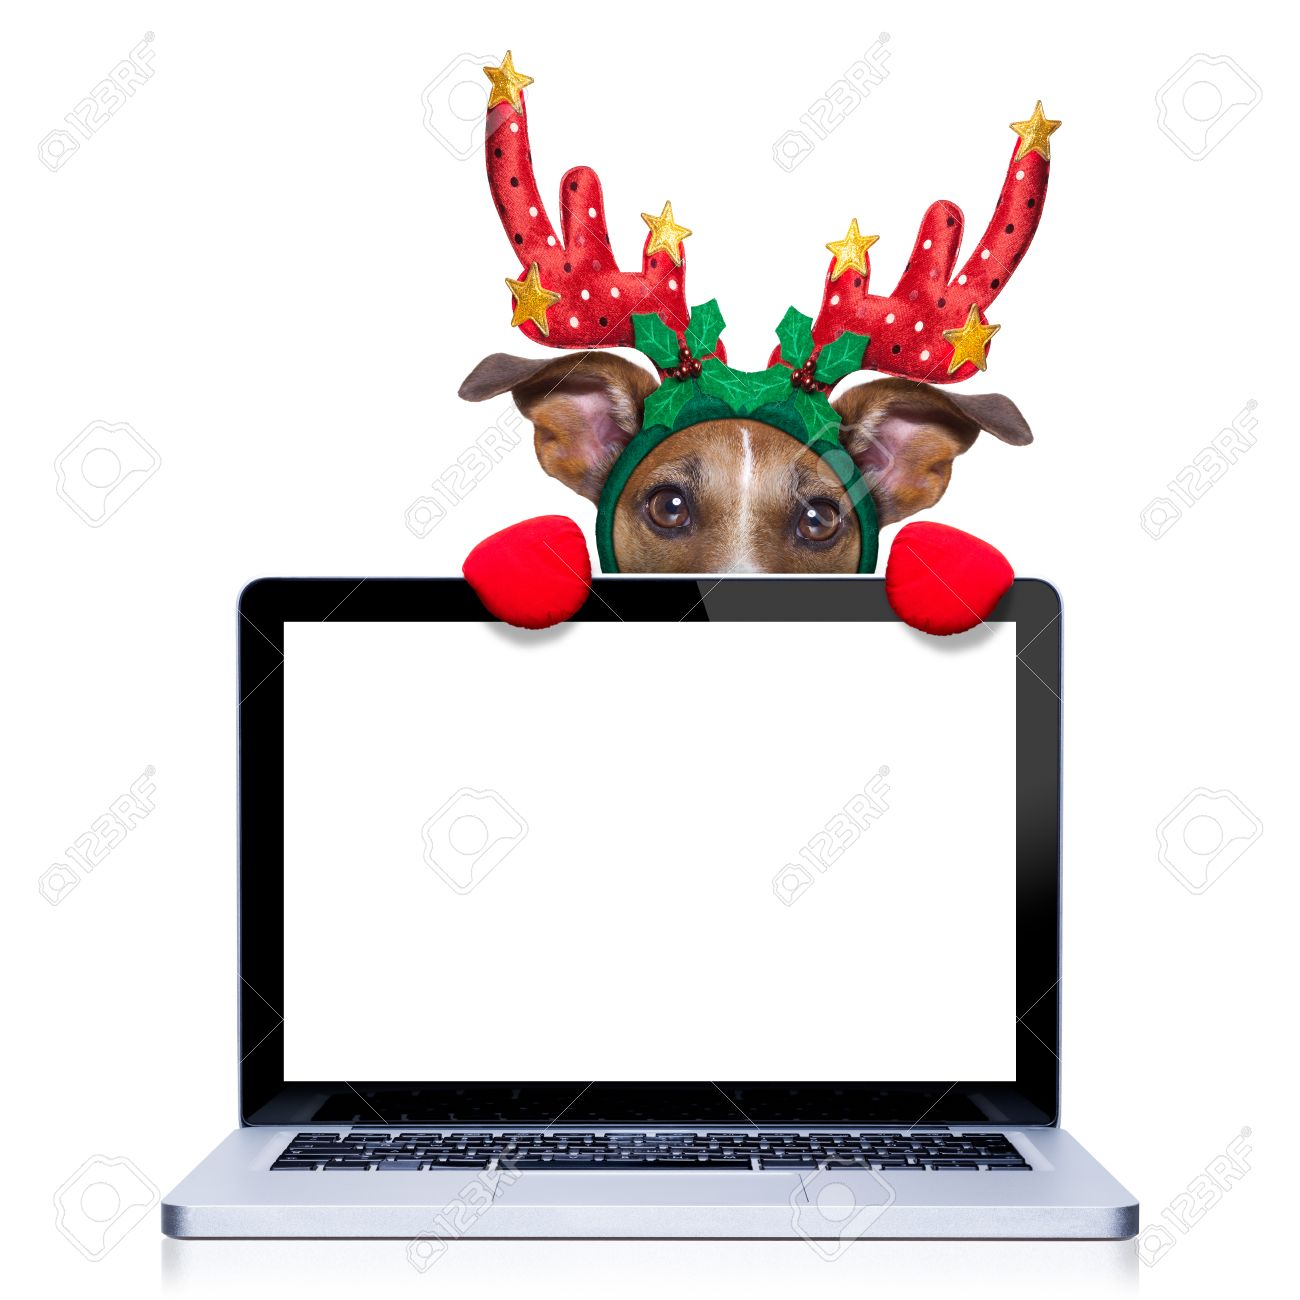 Christmas Dog With Reindeer Costume Behind A Laptop Computer ...